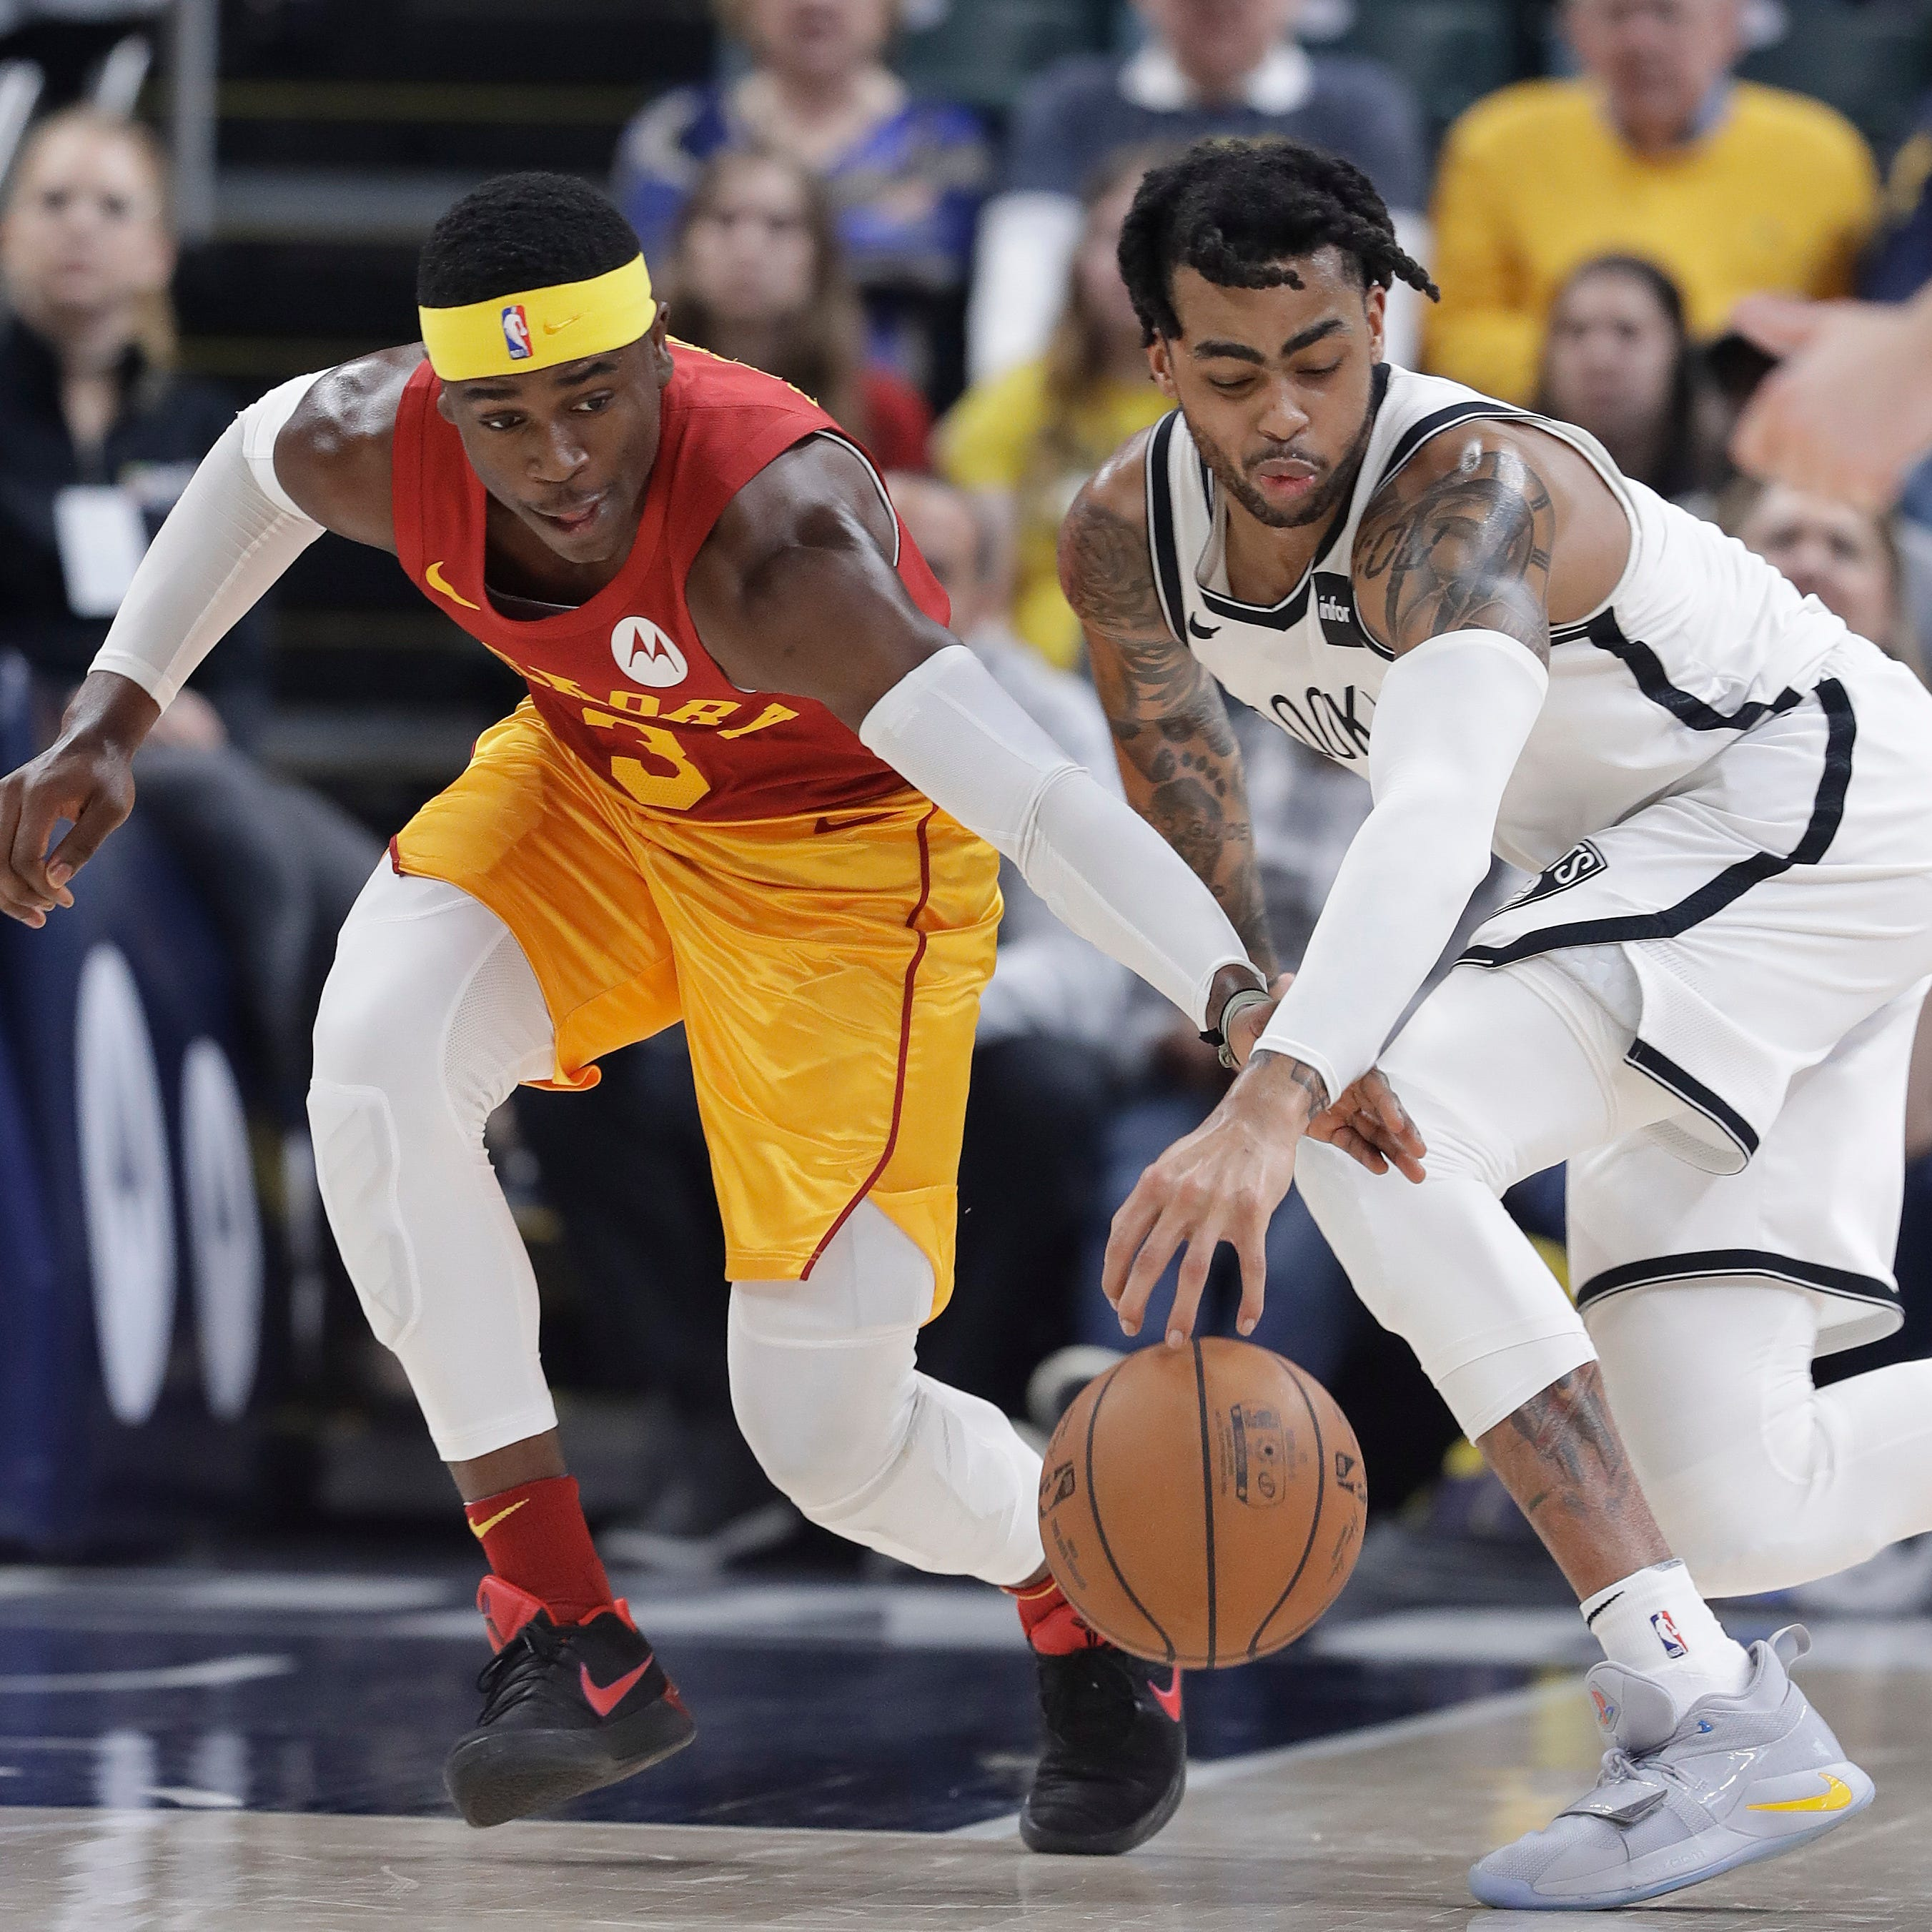 Doyel: Pacers running out of gas. Is there anything left in the tank for playoffs?